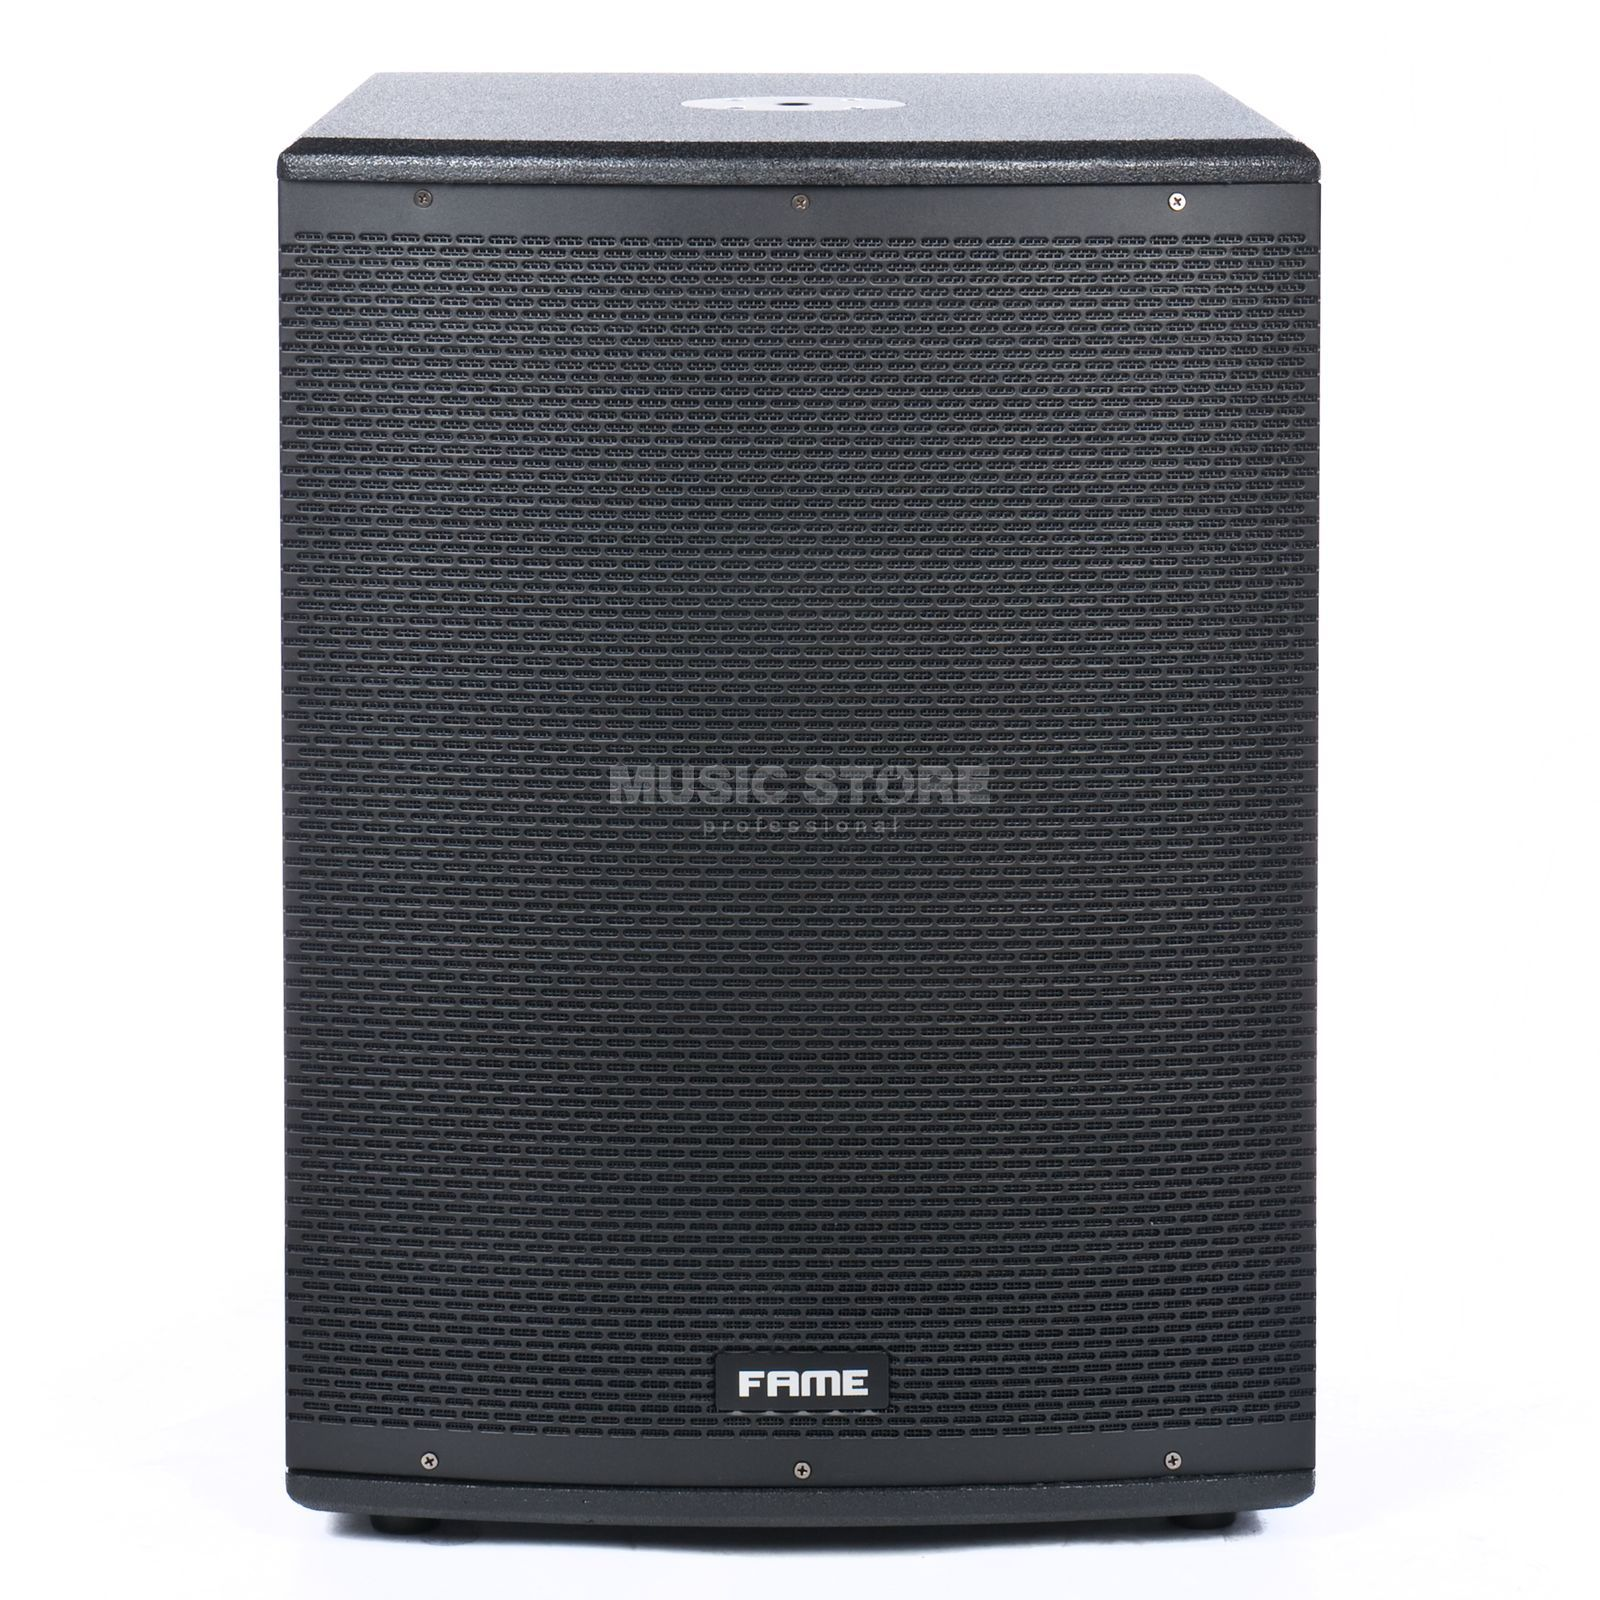 "Fame audio Challenger SUB 15P Passive 15"" 600W Subwoofer Product Image"